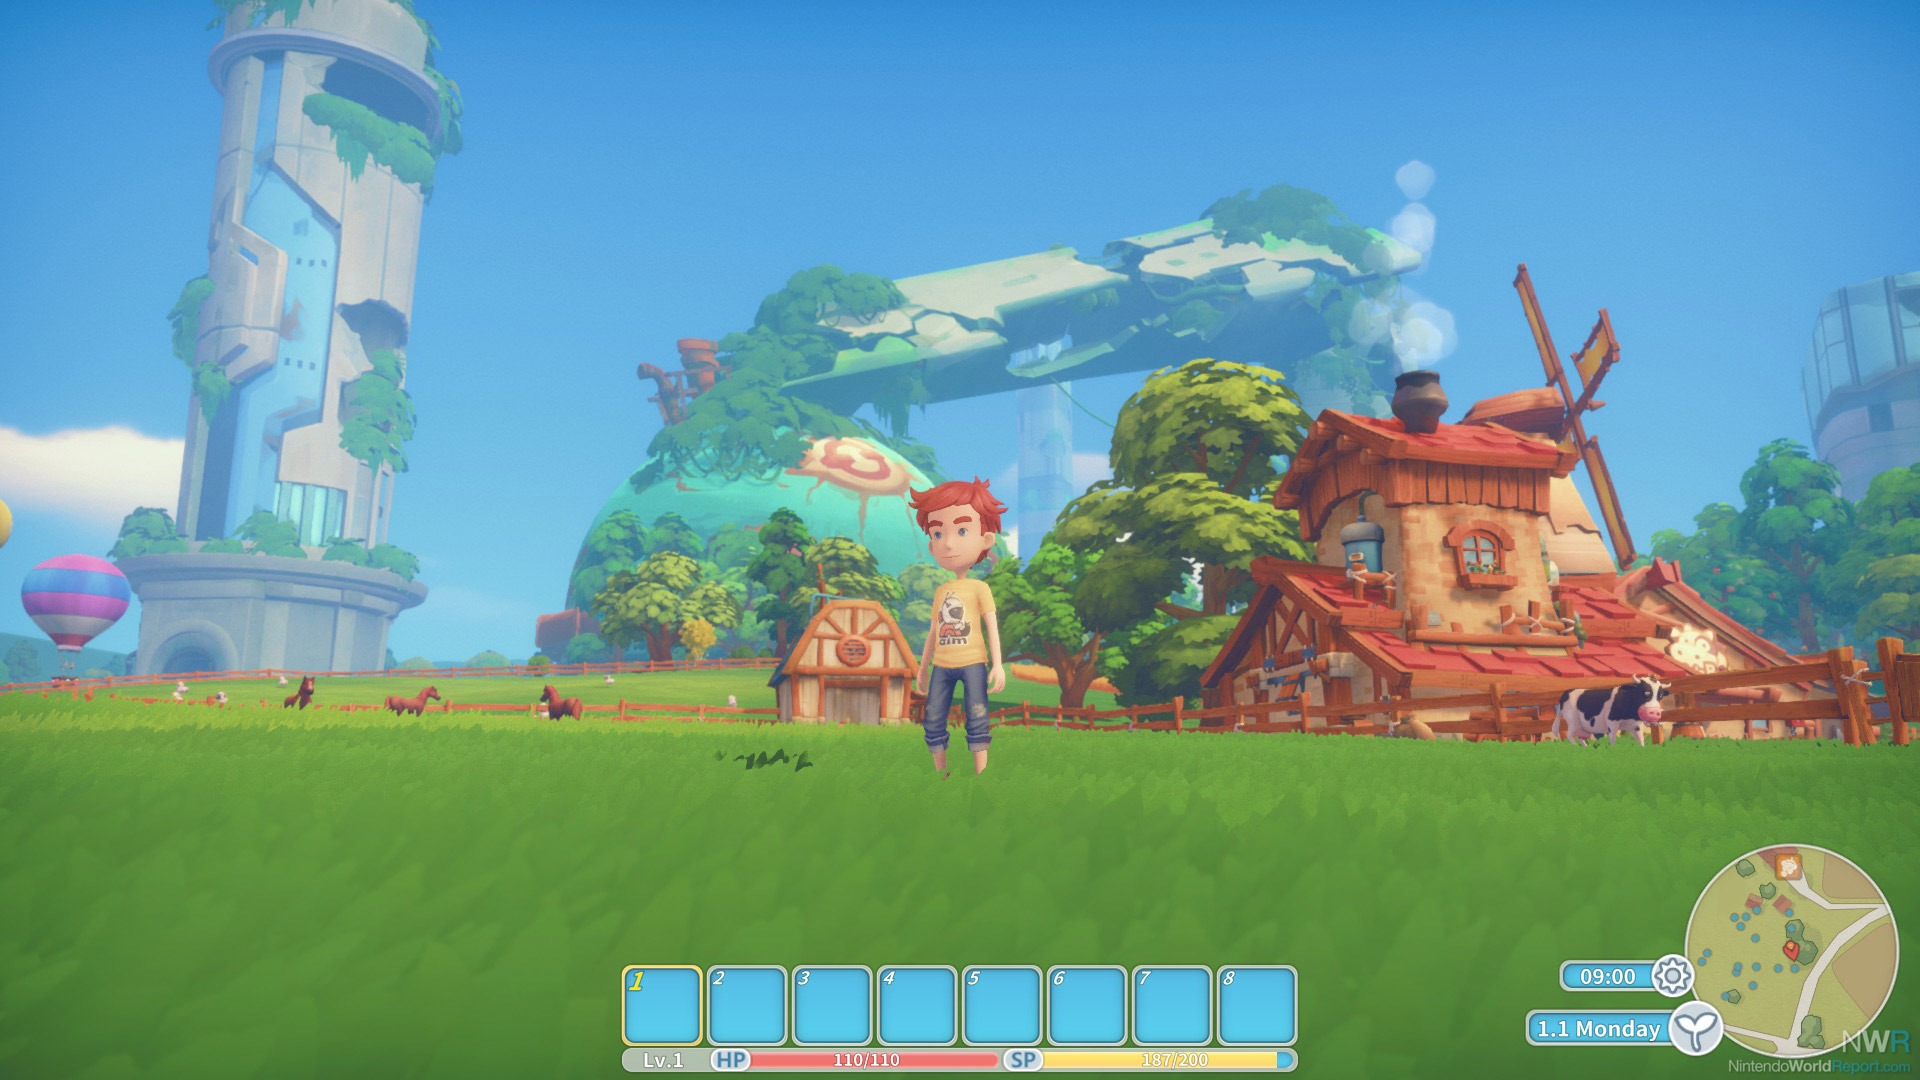 Adorable crafting sandbox My Time At Portia enters Steam early access today